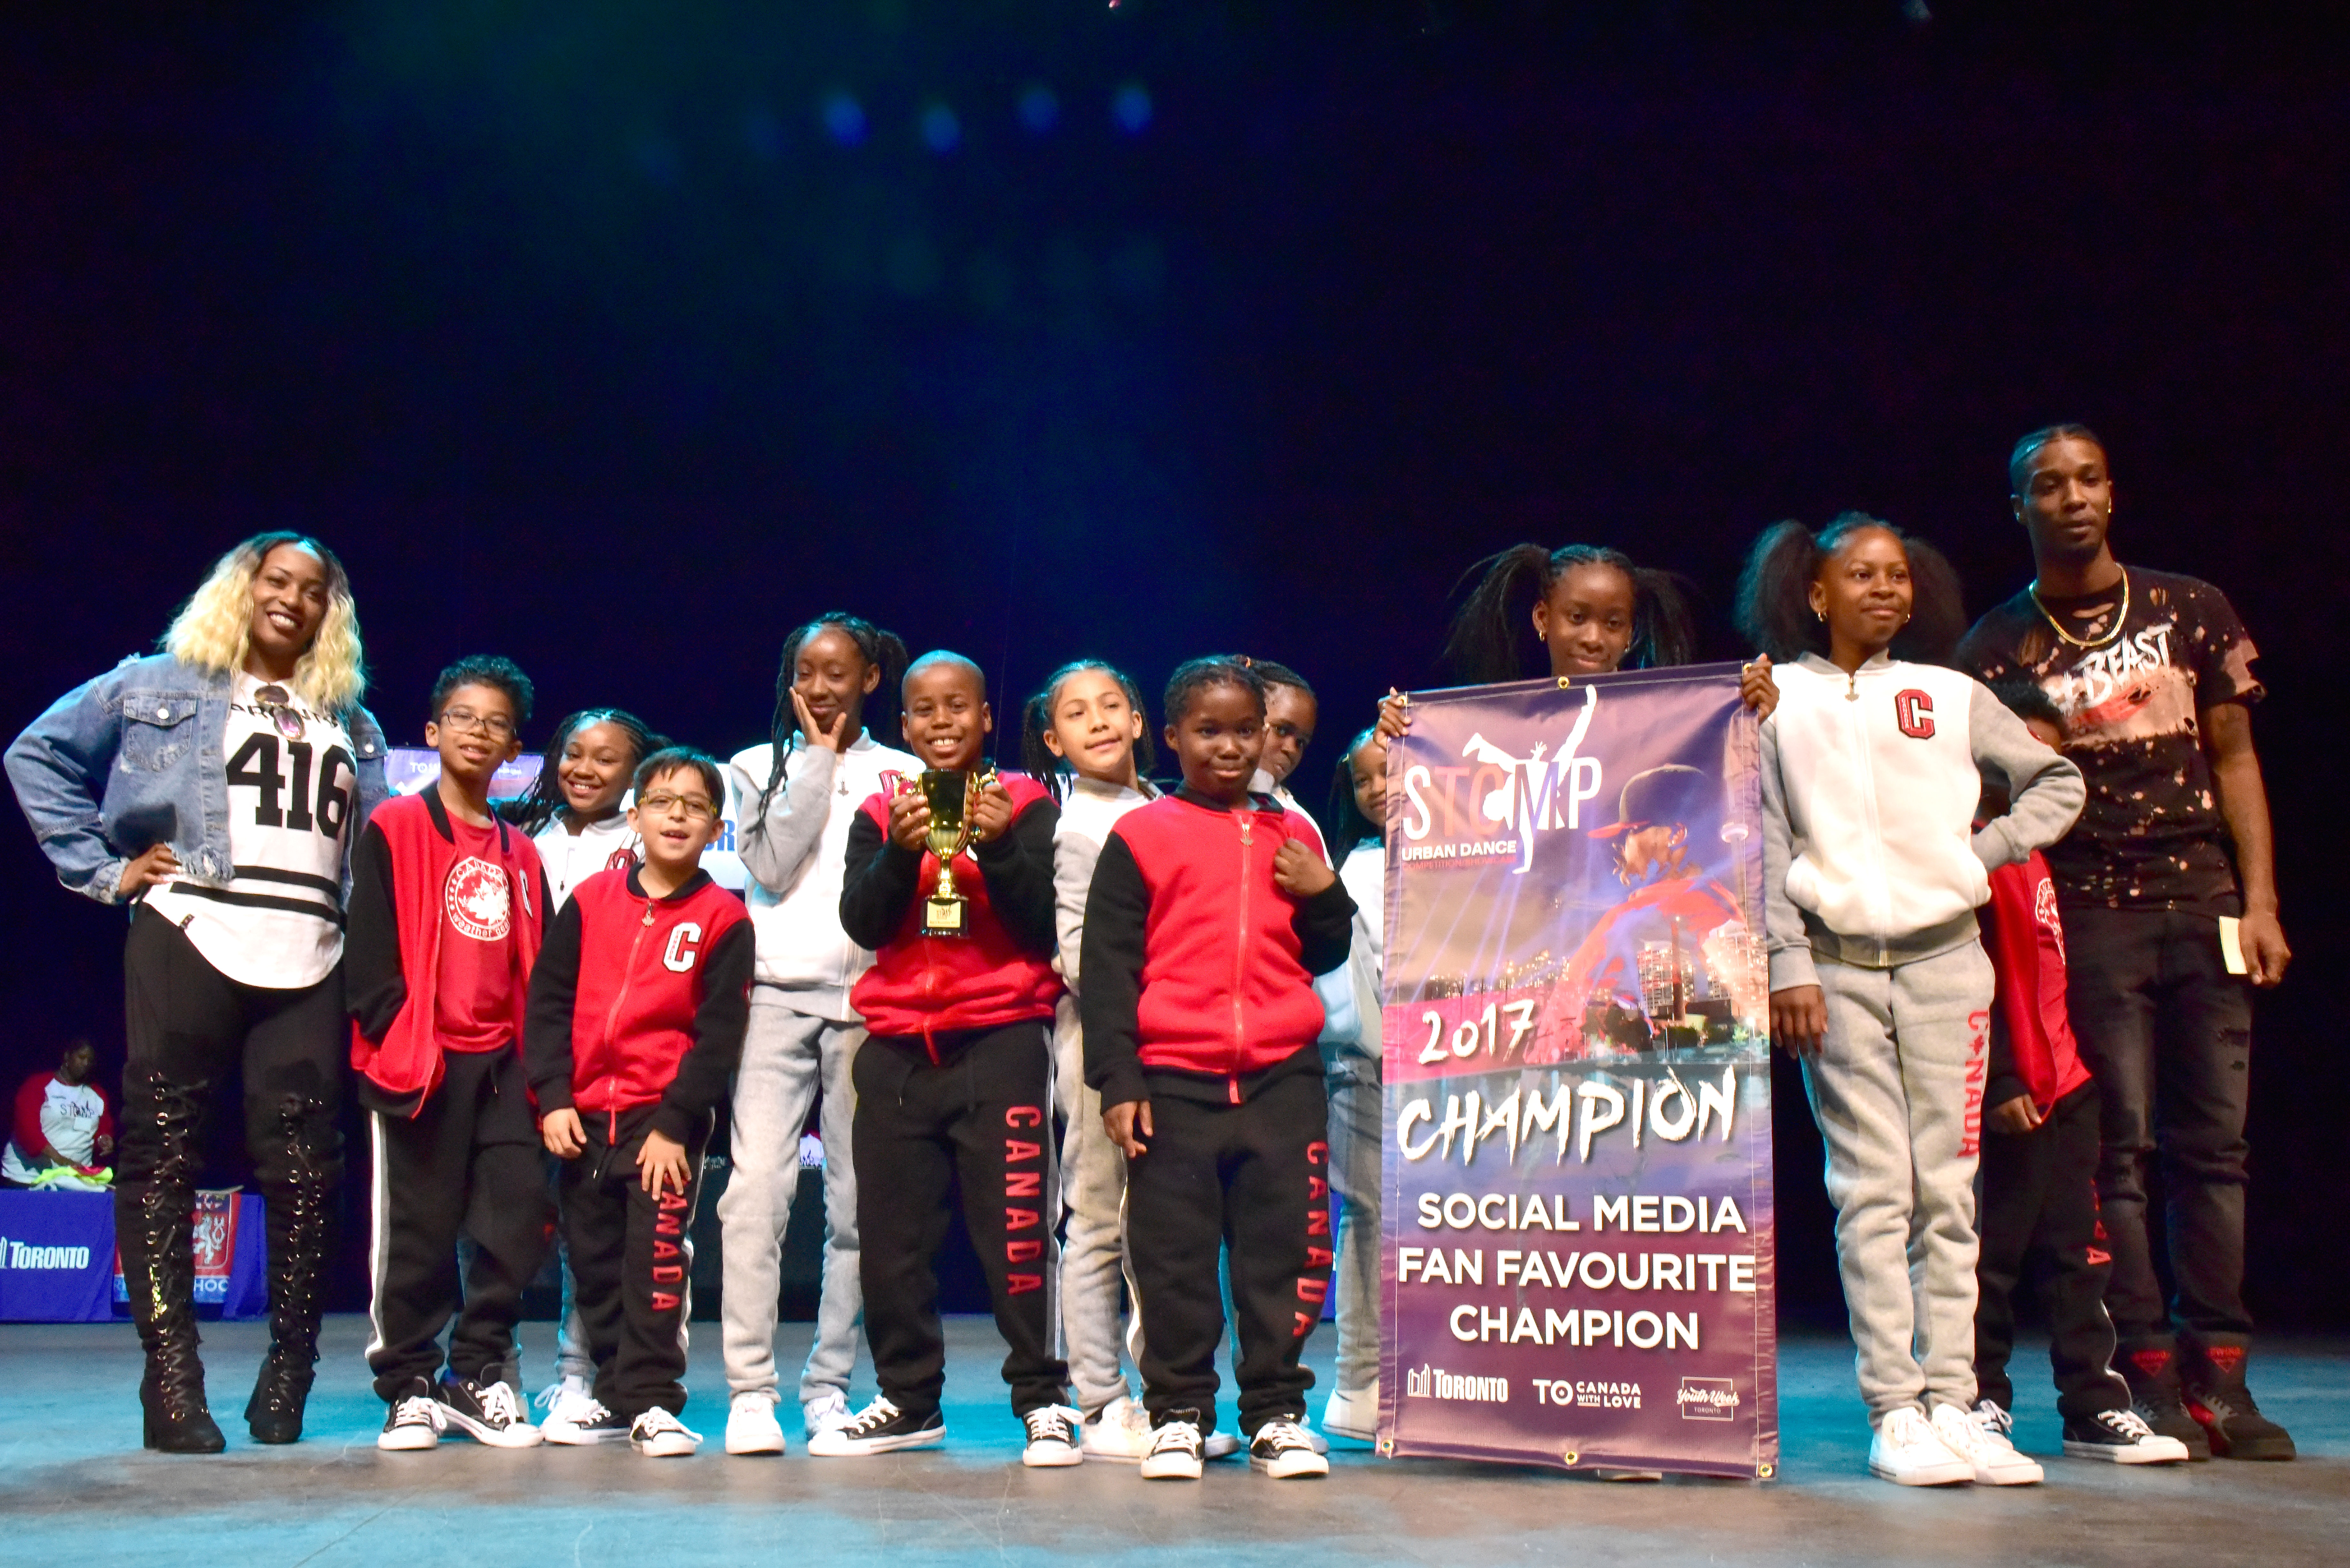 STOMP 2017 Fan Fav dance group winners